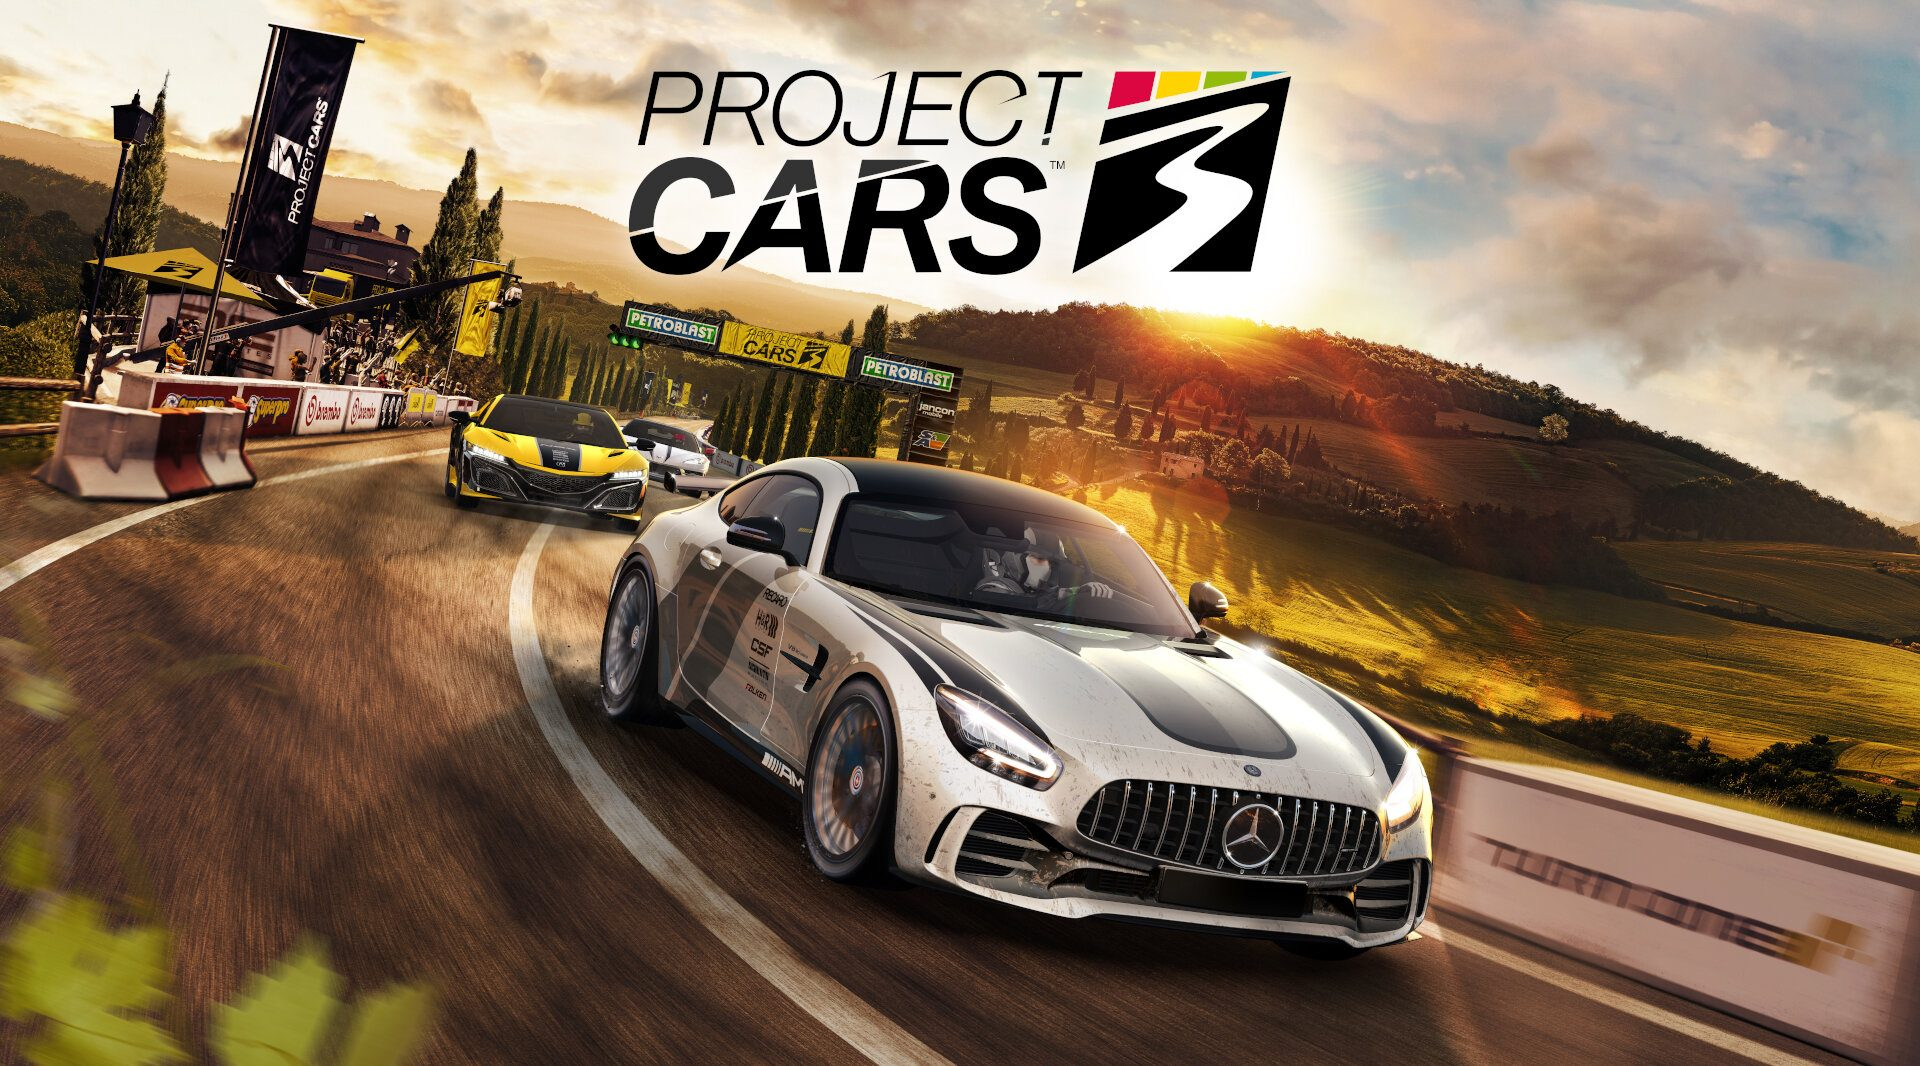 project cars 3, Project CARS 3 – Data d'uscita svelata